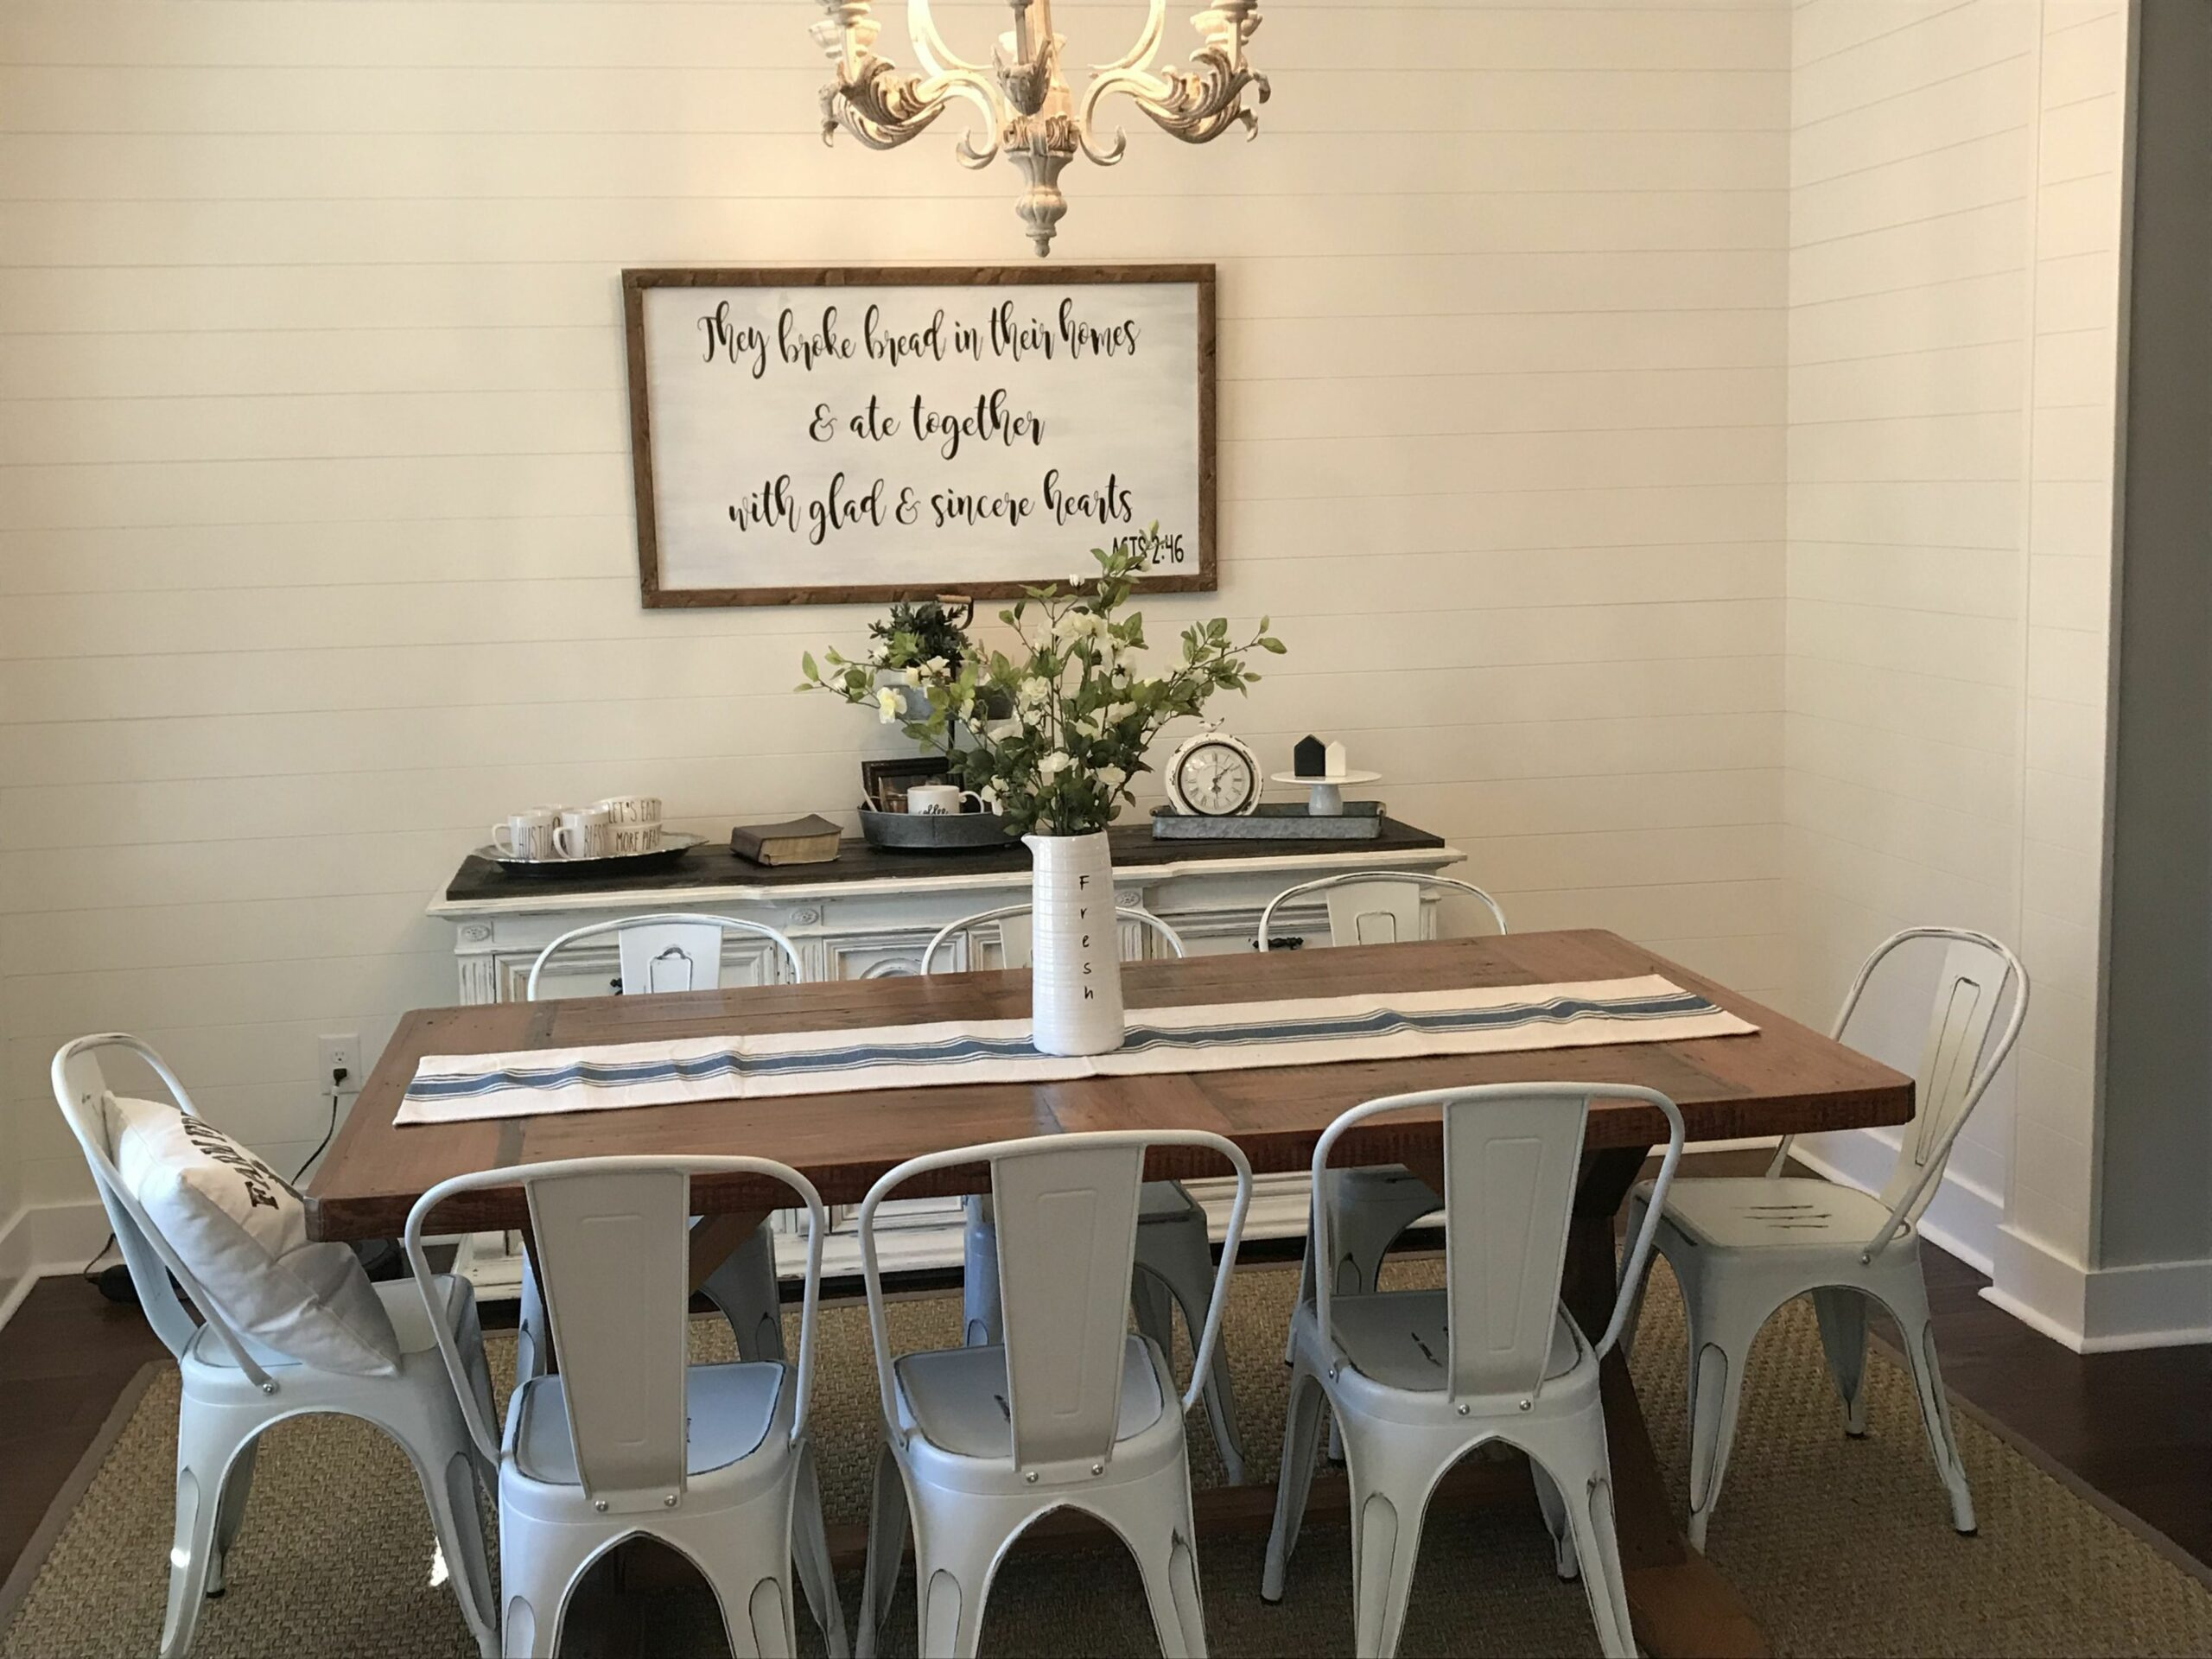 Farmhouse tour Farmhouse dining room Farmhouse decor Hobby lobby ..